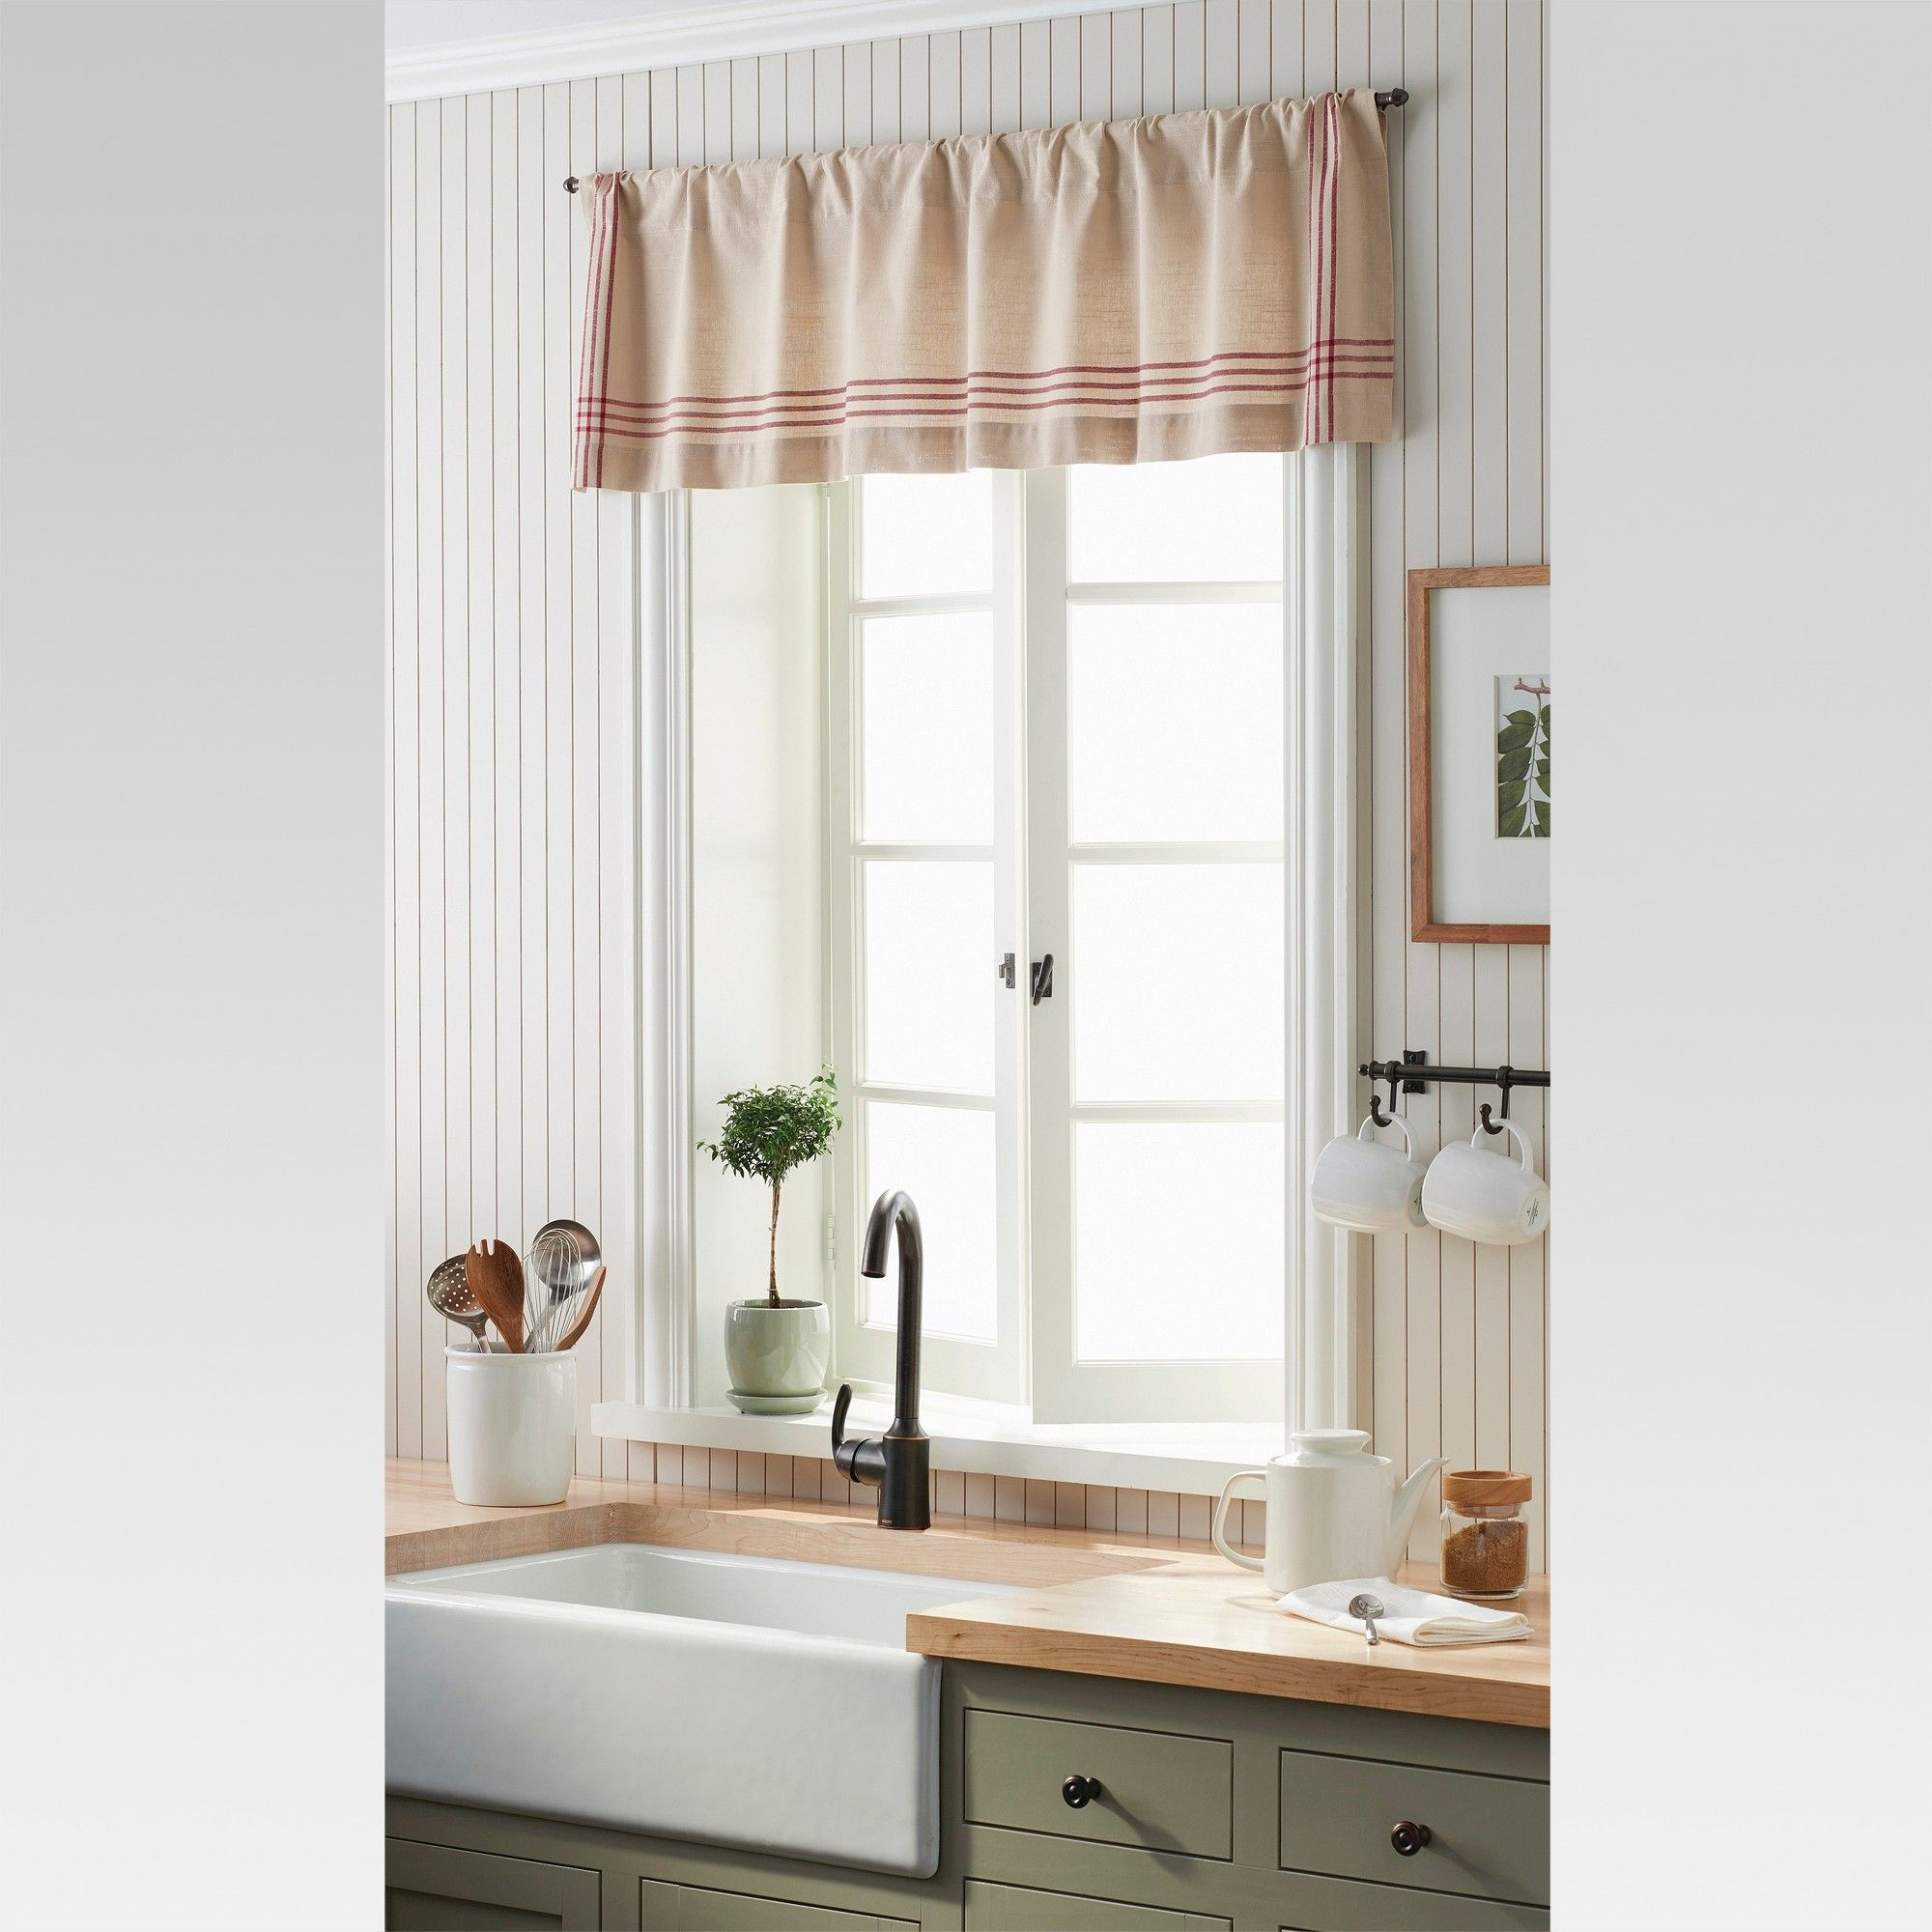 Window Valance – Linen/red Plaid Border – Threshold Pertaining To 2021 Wallace Window Kitchen Curtain Tiers (View 12 of 20)